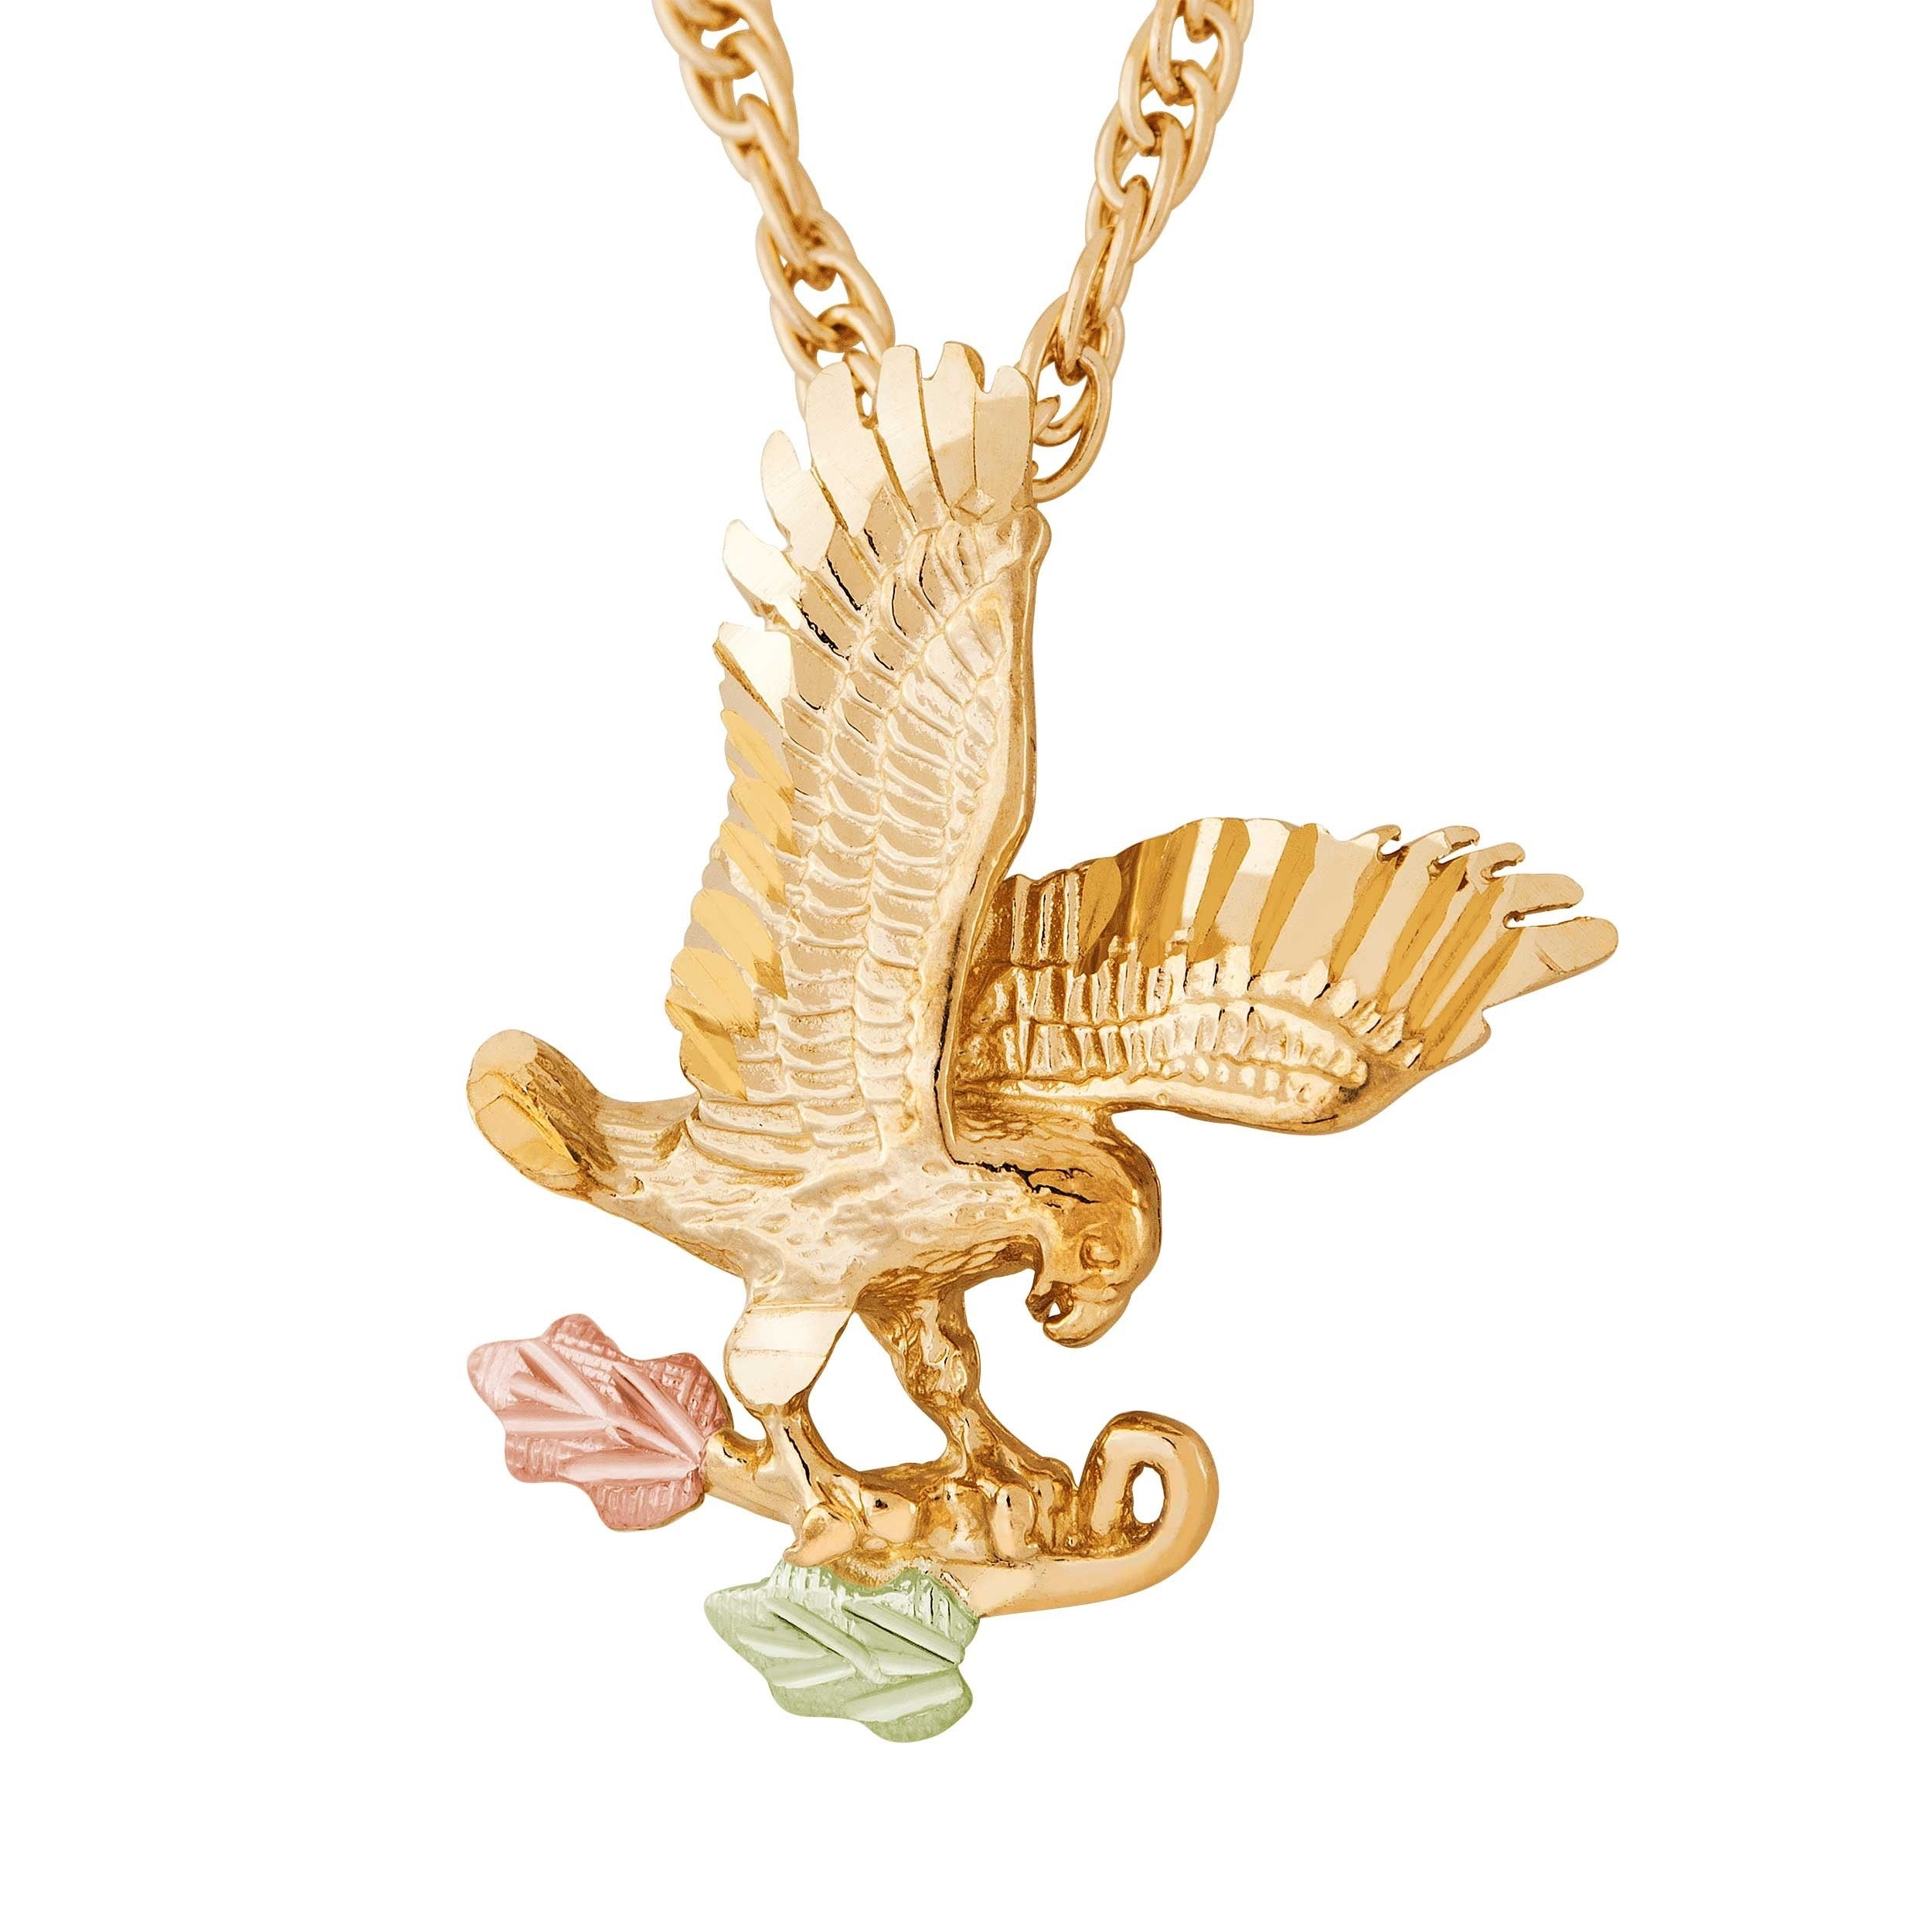 s eagle palmbeach necklace chain yellow gold detail tone at cfm pendant mens products men jewelry rope